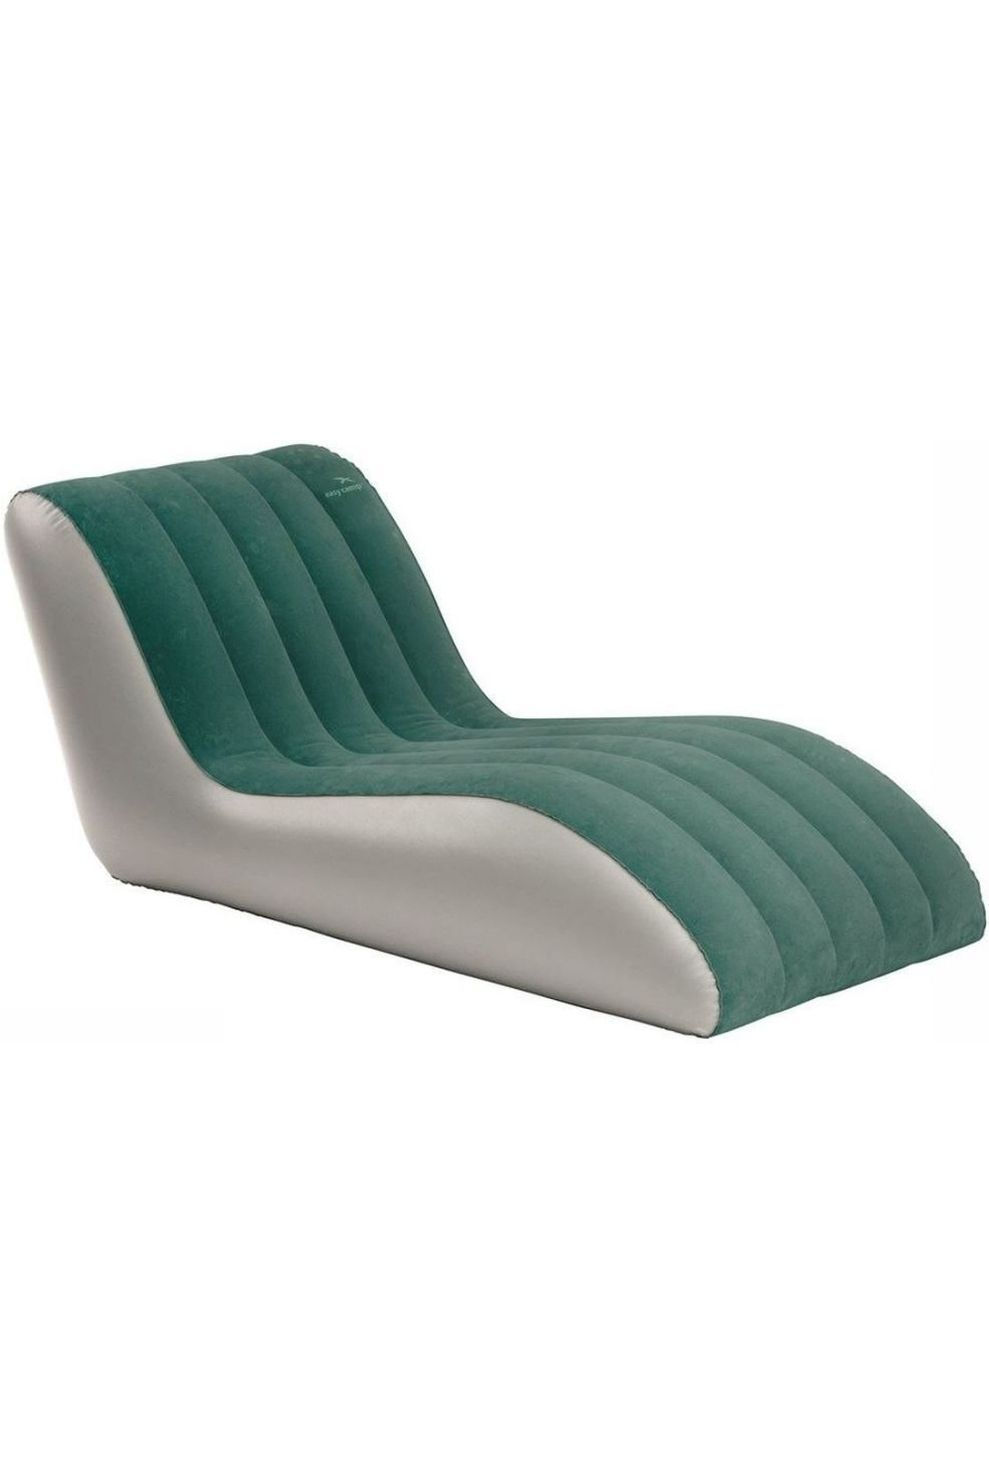 Easy Camp Relaxstoel Comfy Lounger - Groen